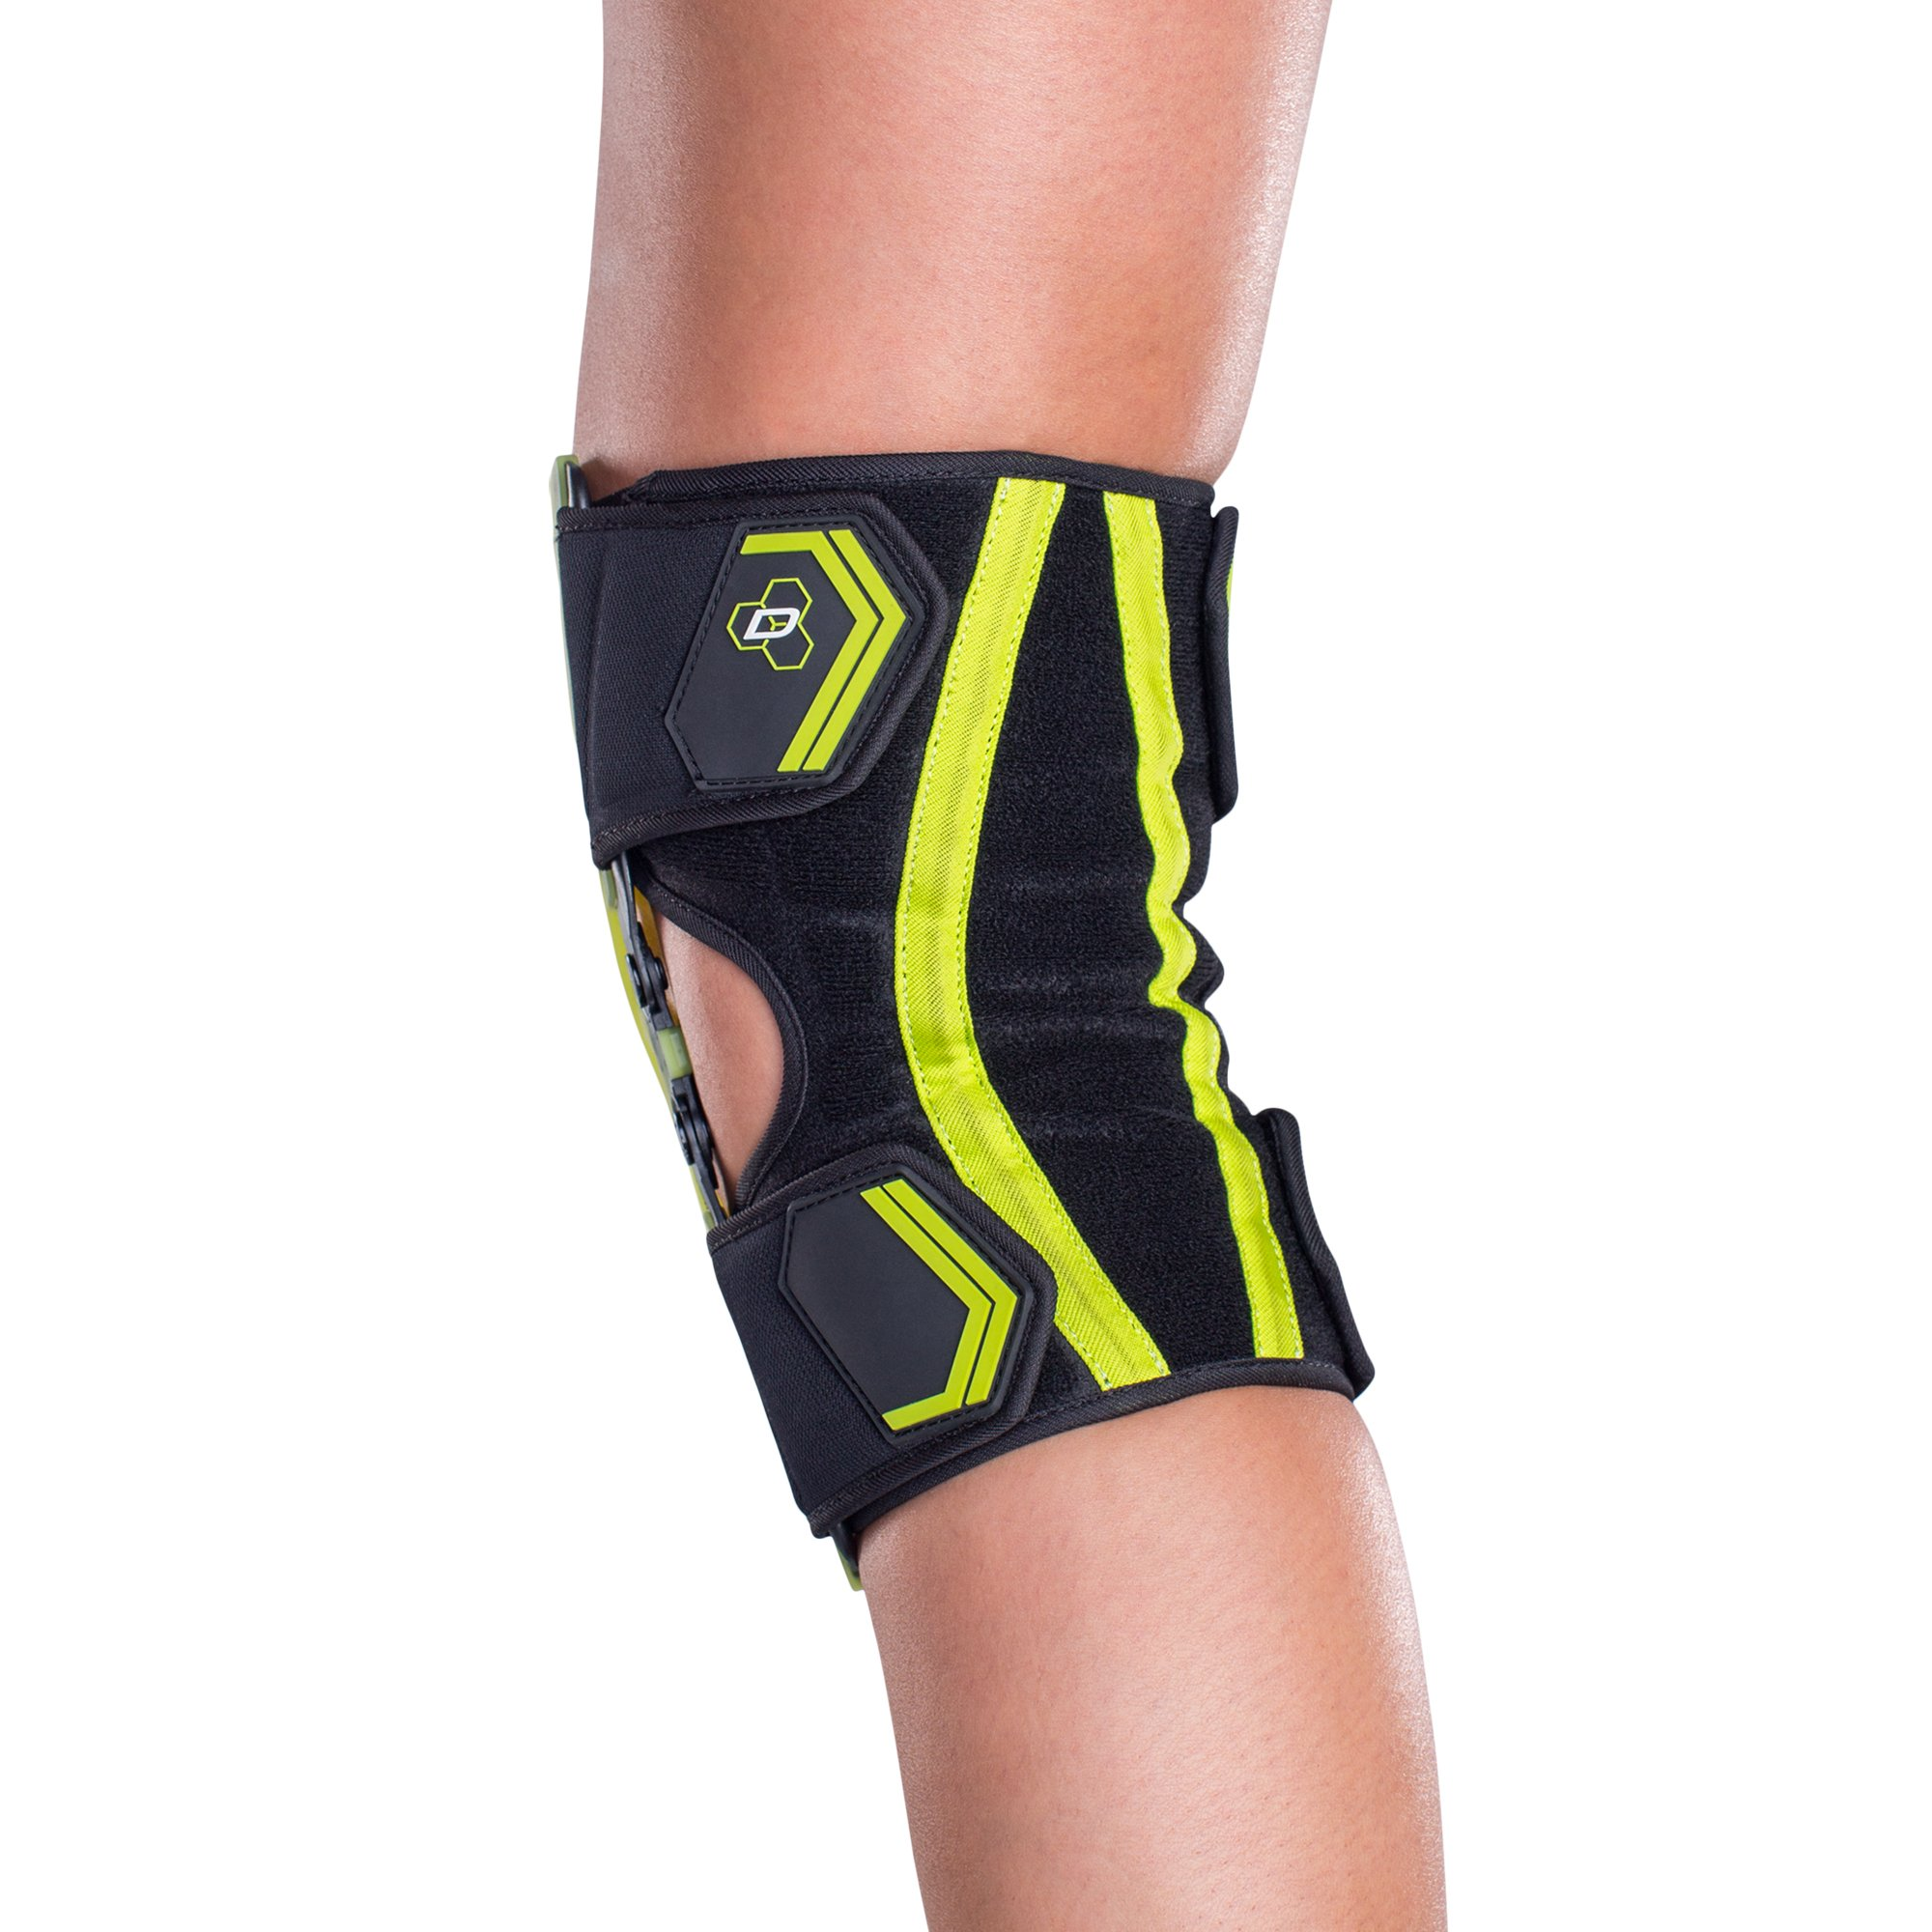 3d26f10f89 DonJoy Performance WEBTECH Knee Support Brace with Compression Undersleeve  - DP151KB01-SGR-M-P < Knee Braces < Health & Household - tibs